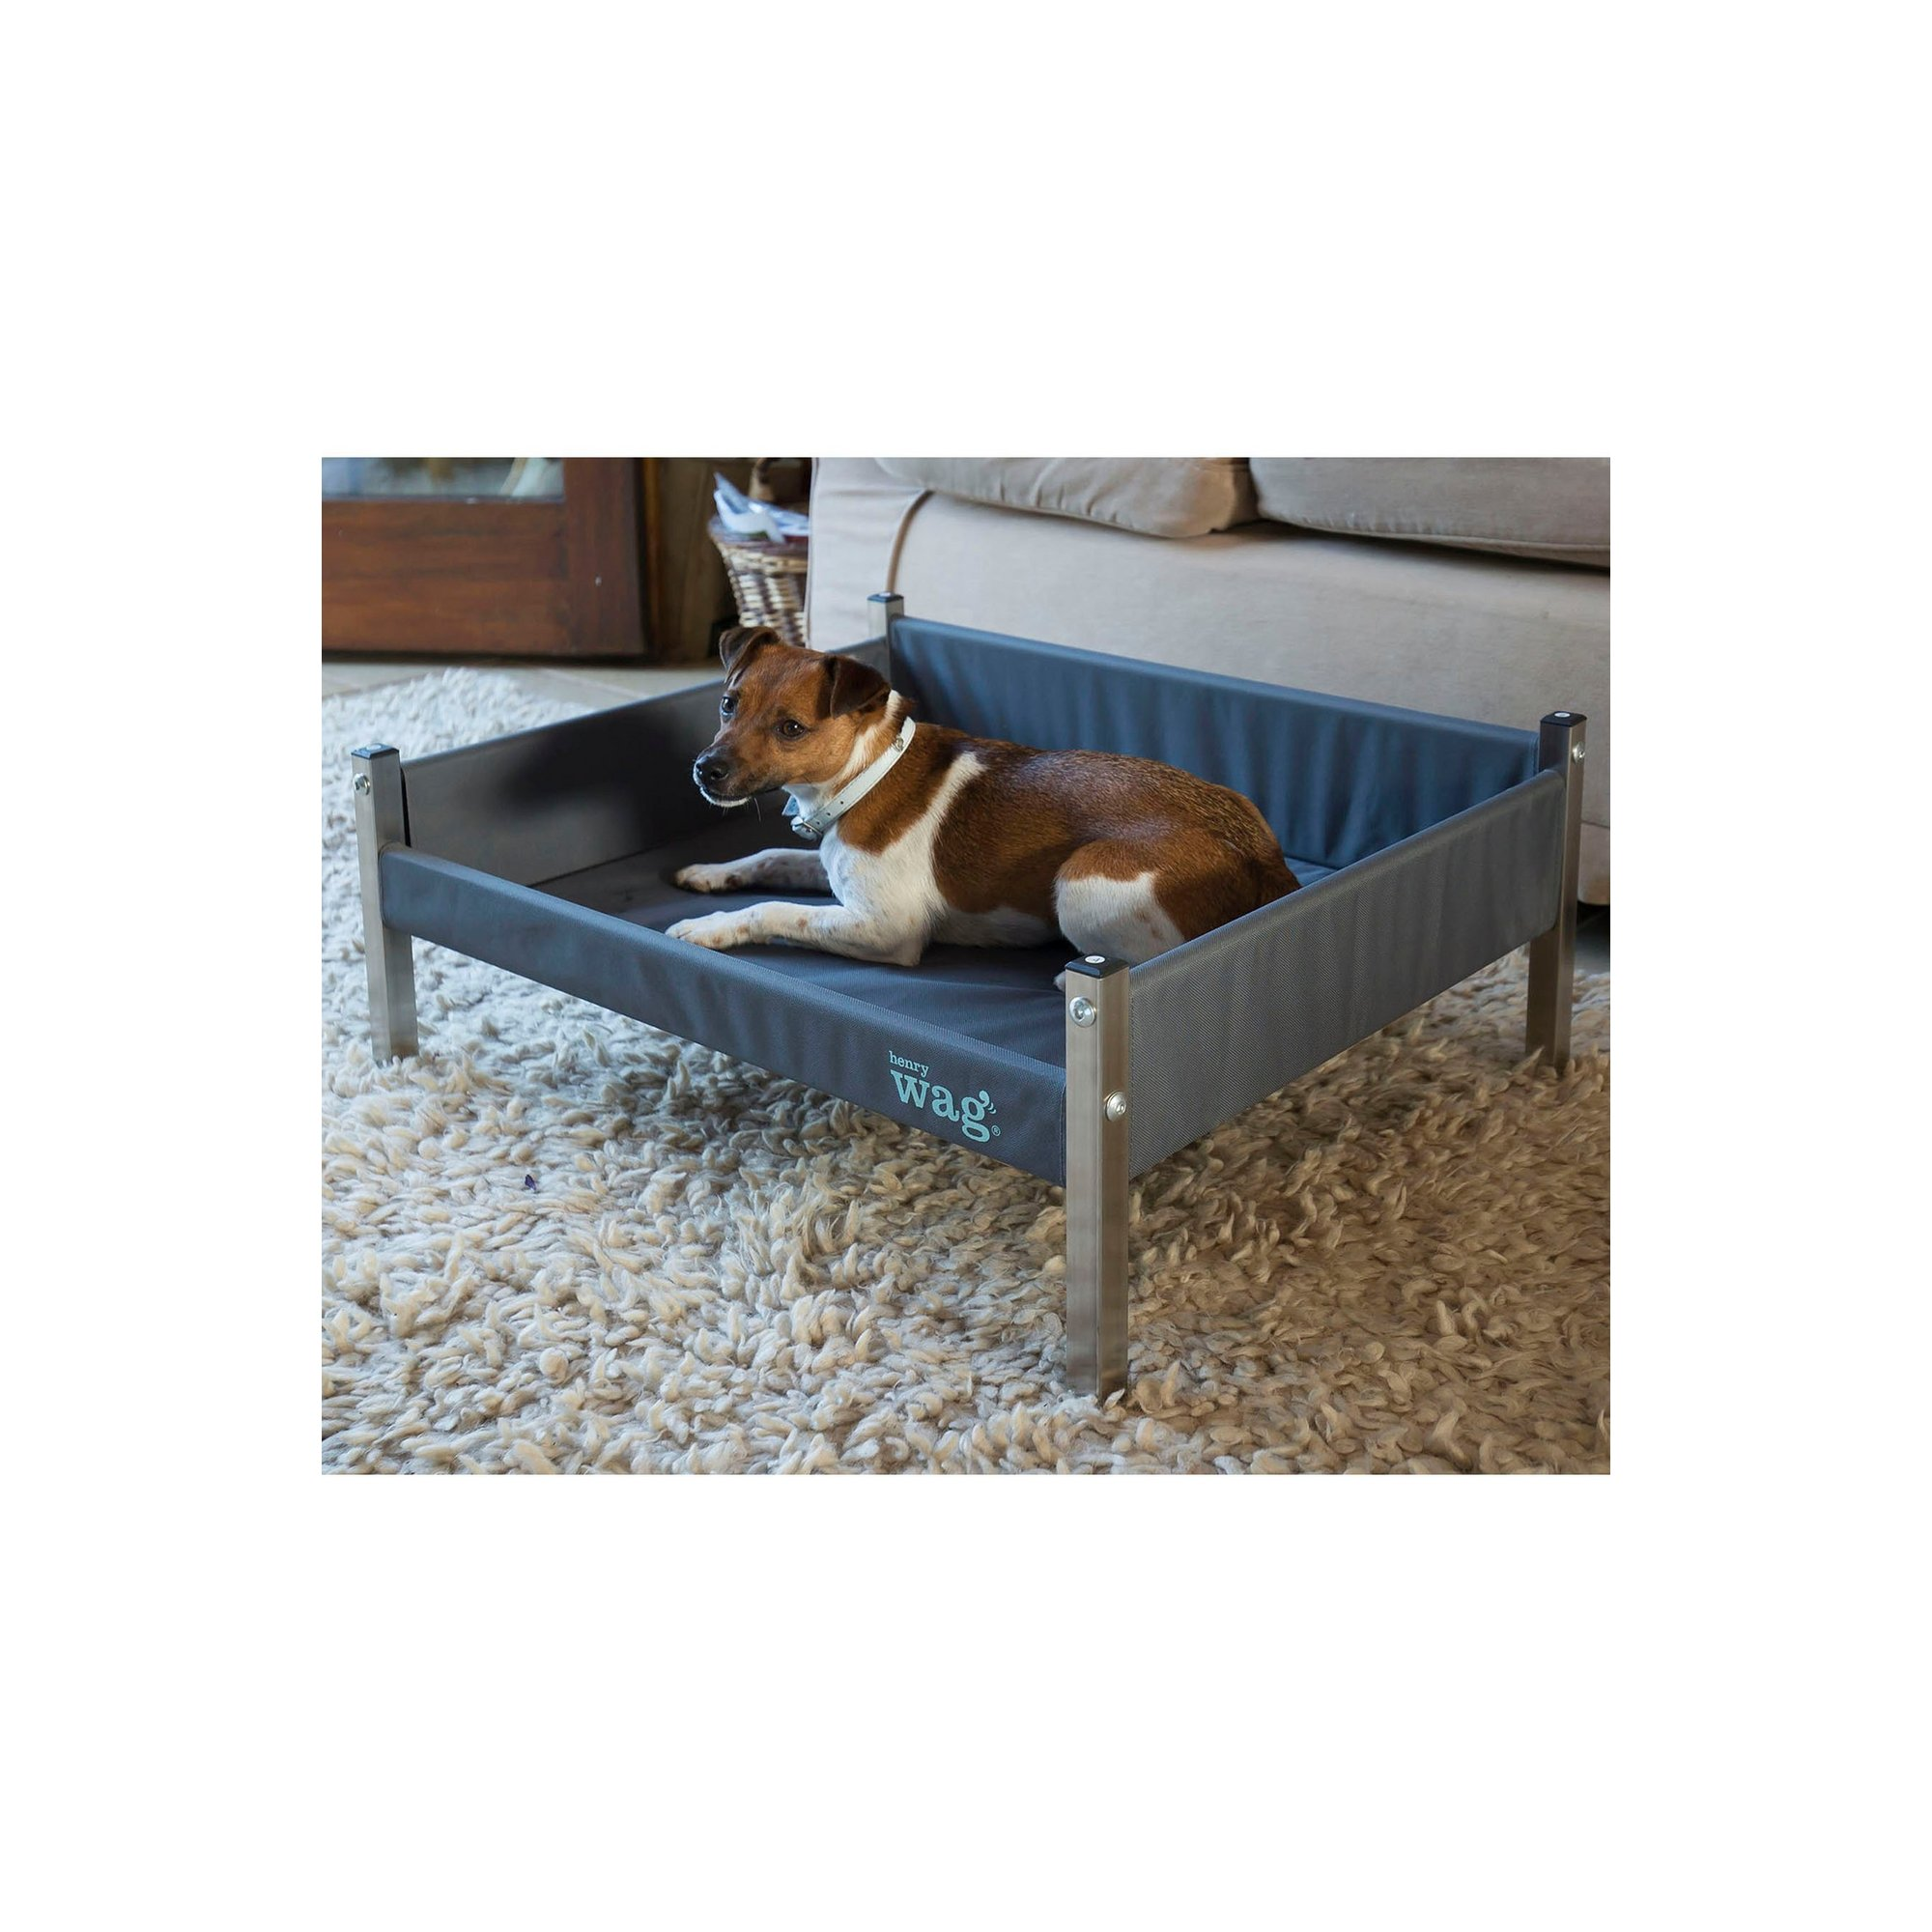 Image of Henry Wag Elevated Dog Bed